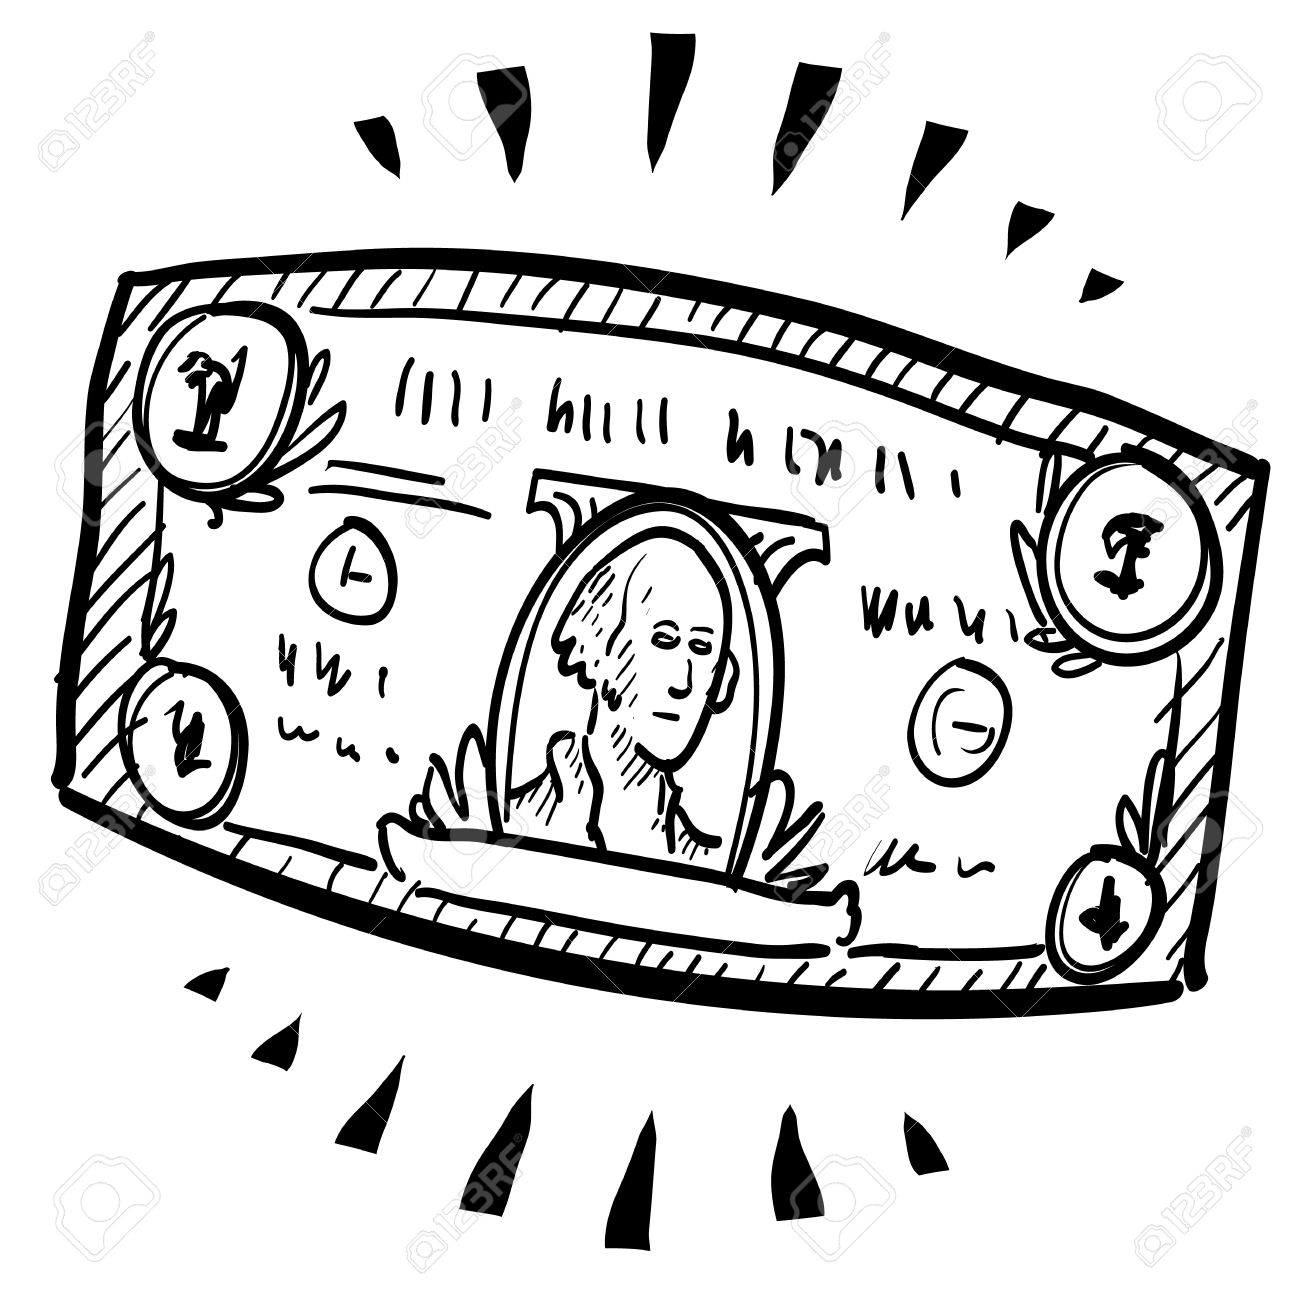 1299x1300 Doodle Style Paper Currency Or Dollar Bill Illustration